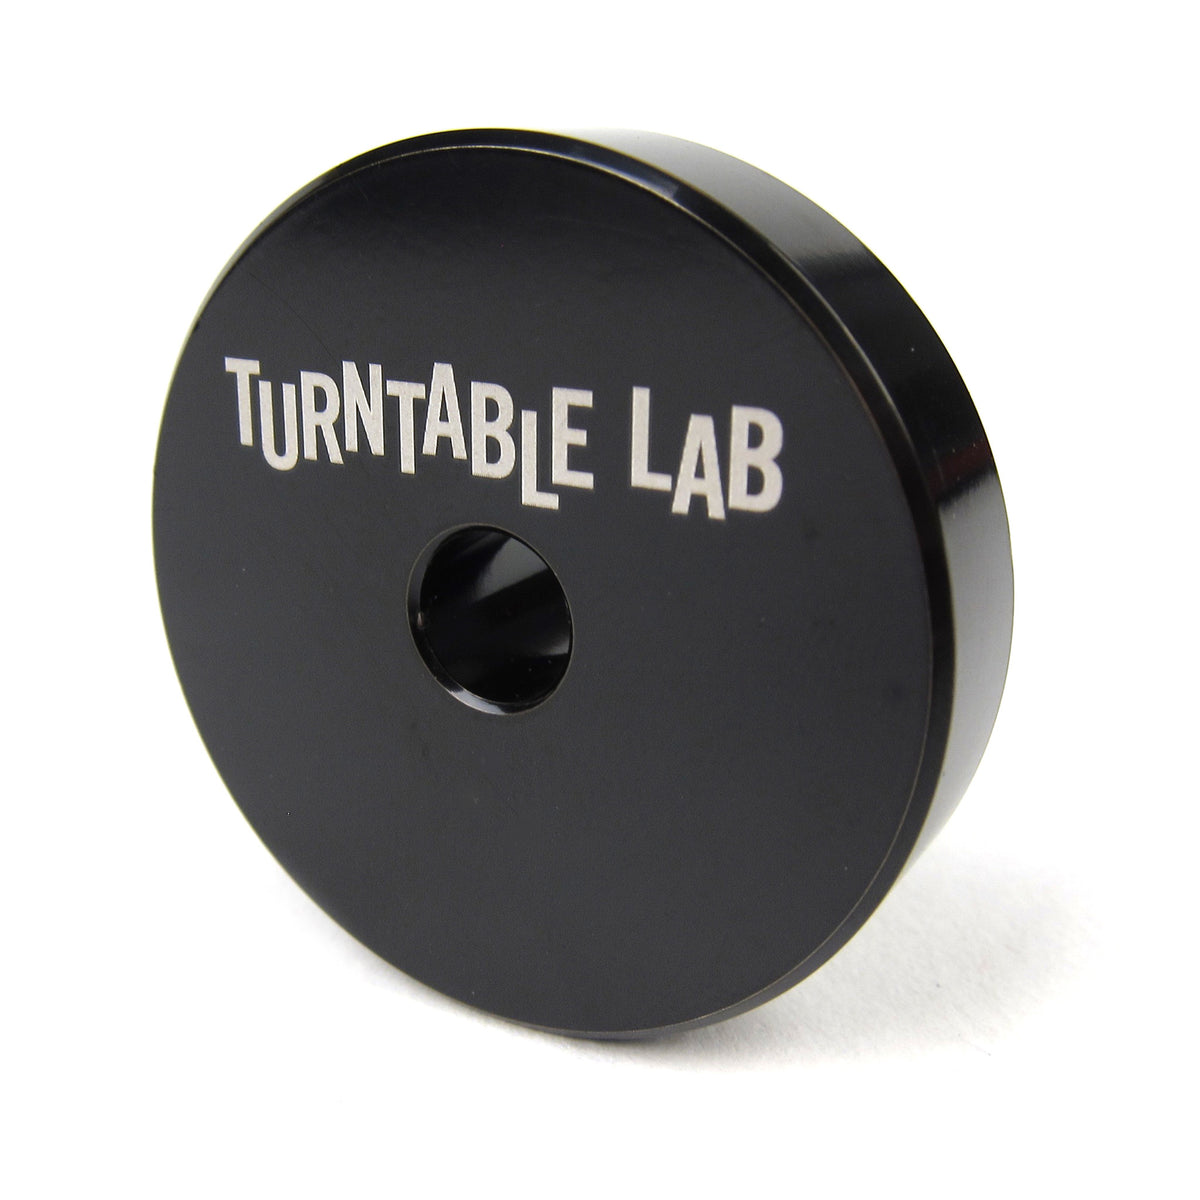 Turntable Lab: Stainless Steel 45 Adapter - Black